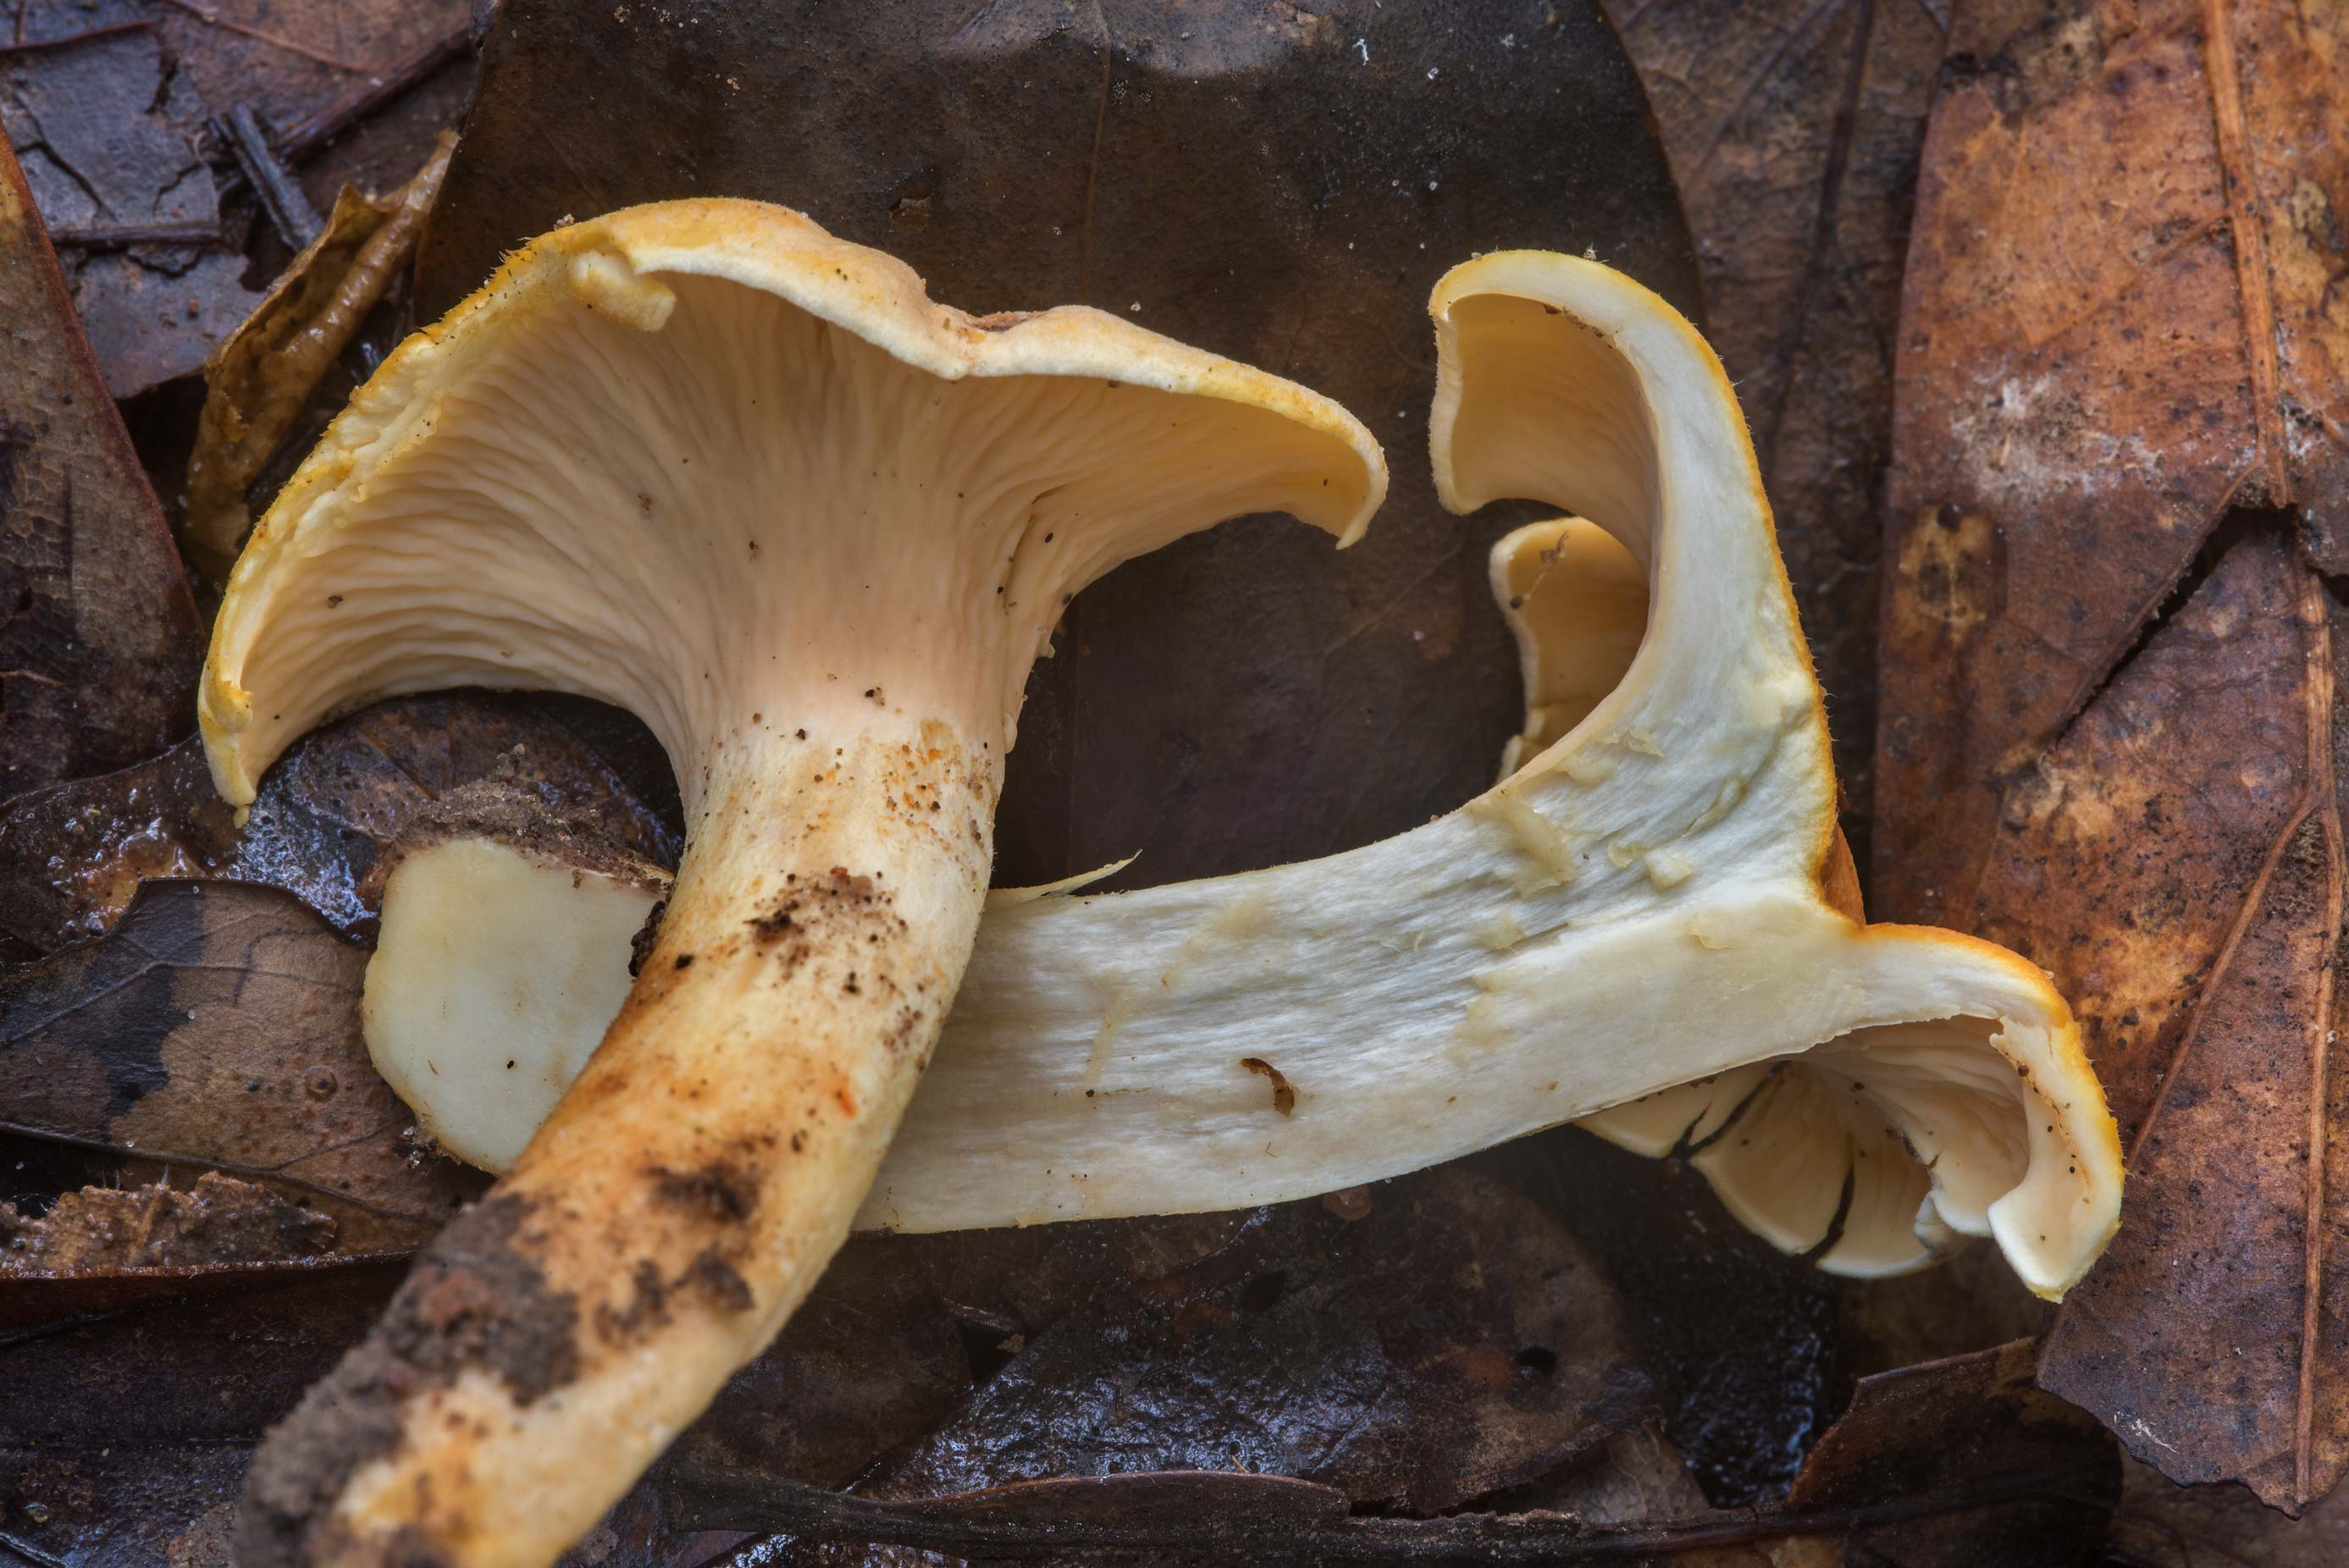 Dissected smooth chanterelle mushroom...Creek Park. College Station, Texas